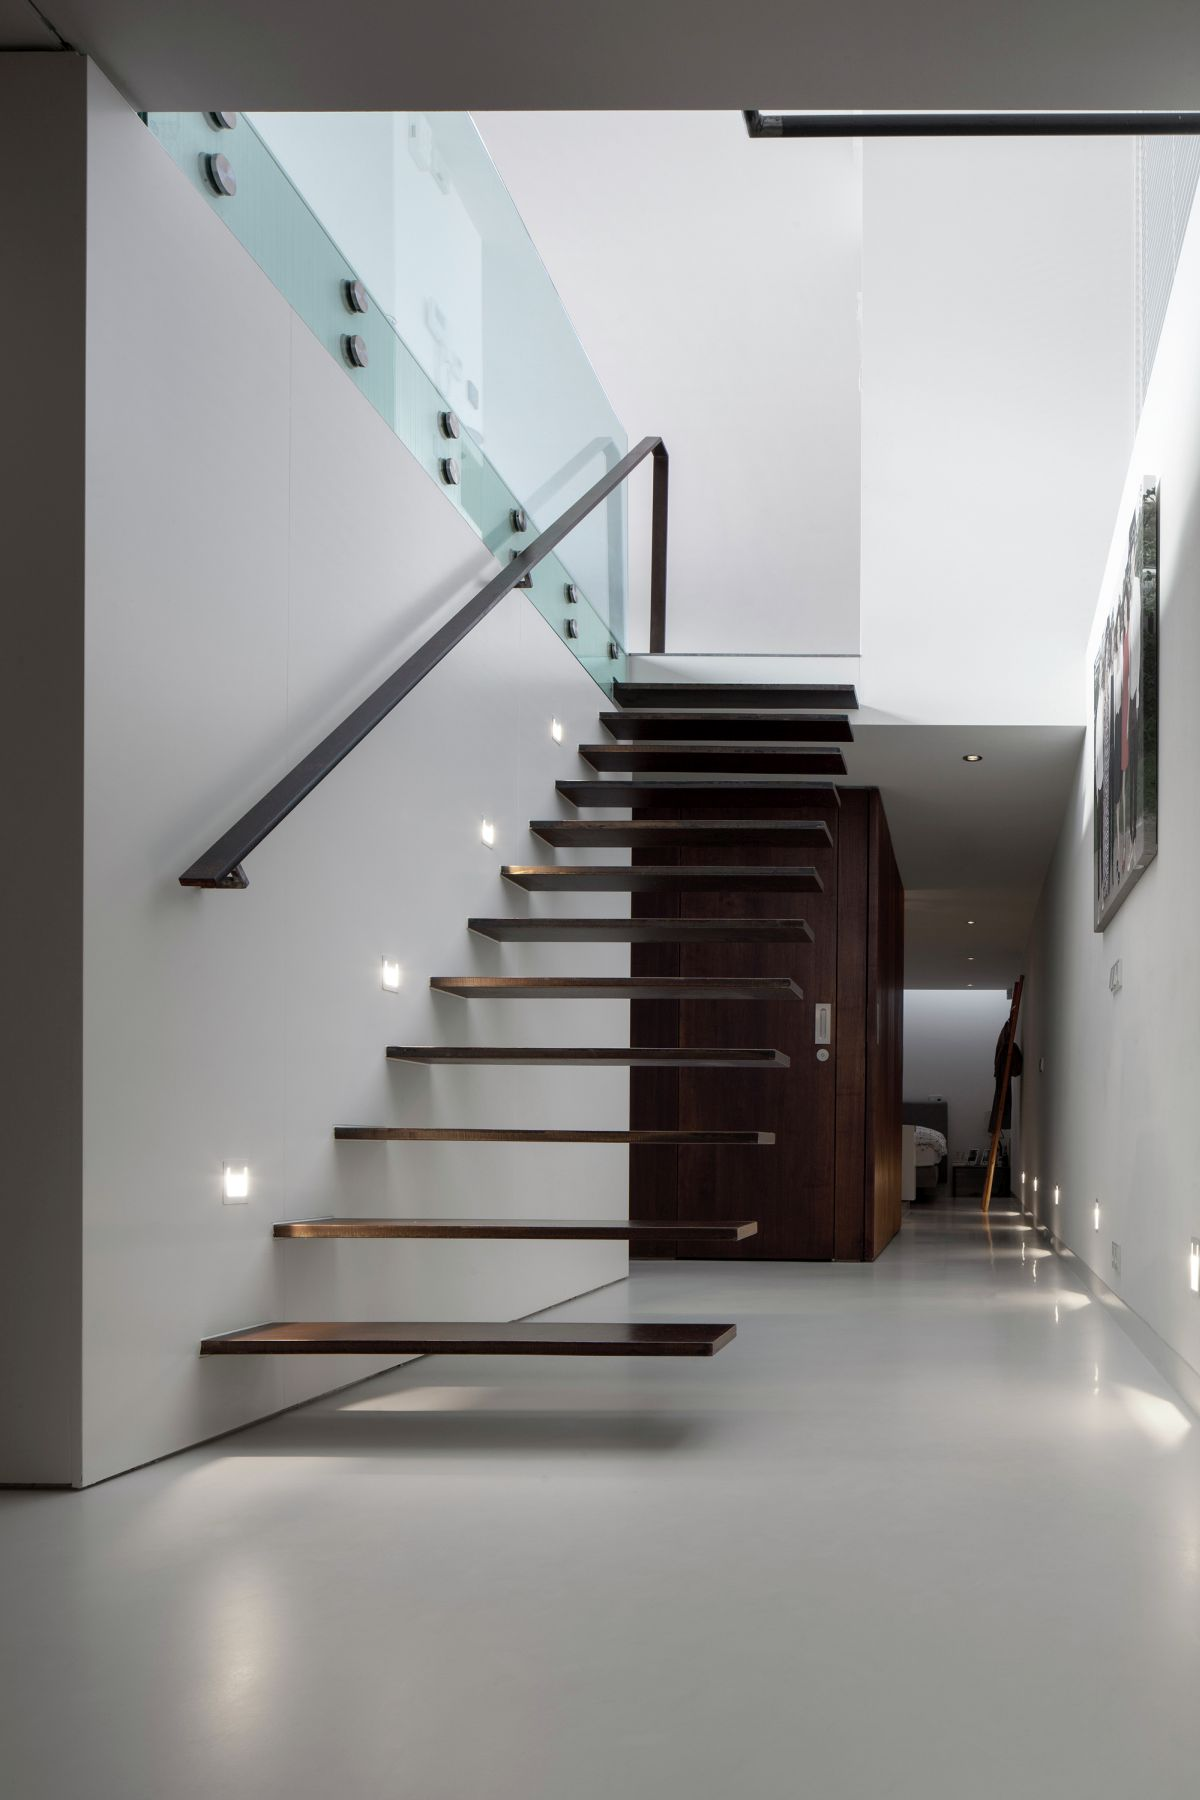 Floating stairs for a floating house in Amsterdam